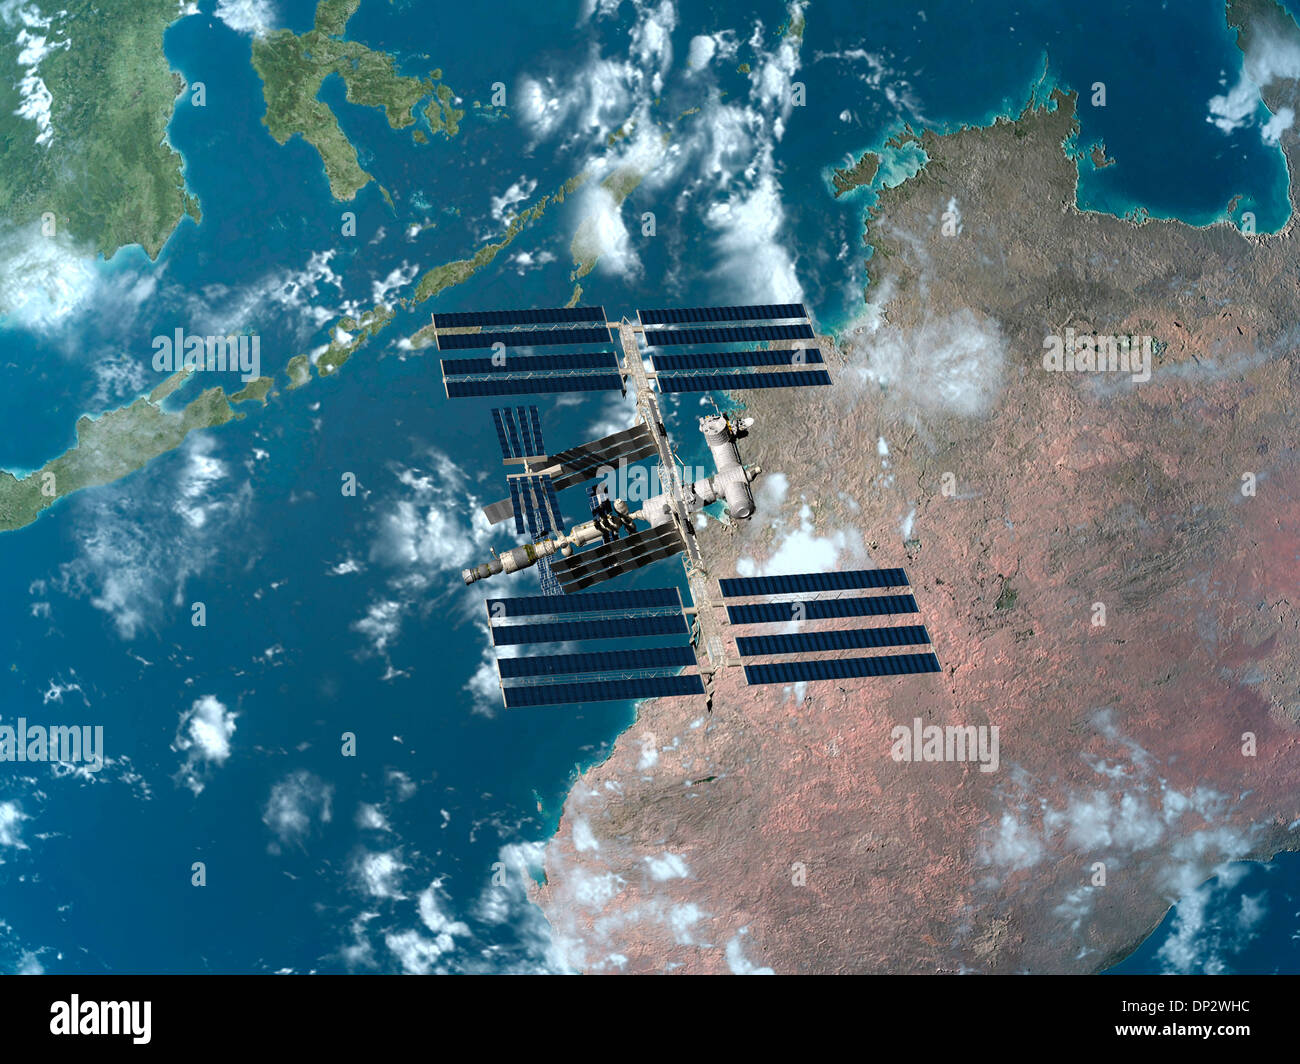 International Space Station, artwork - Stock Image